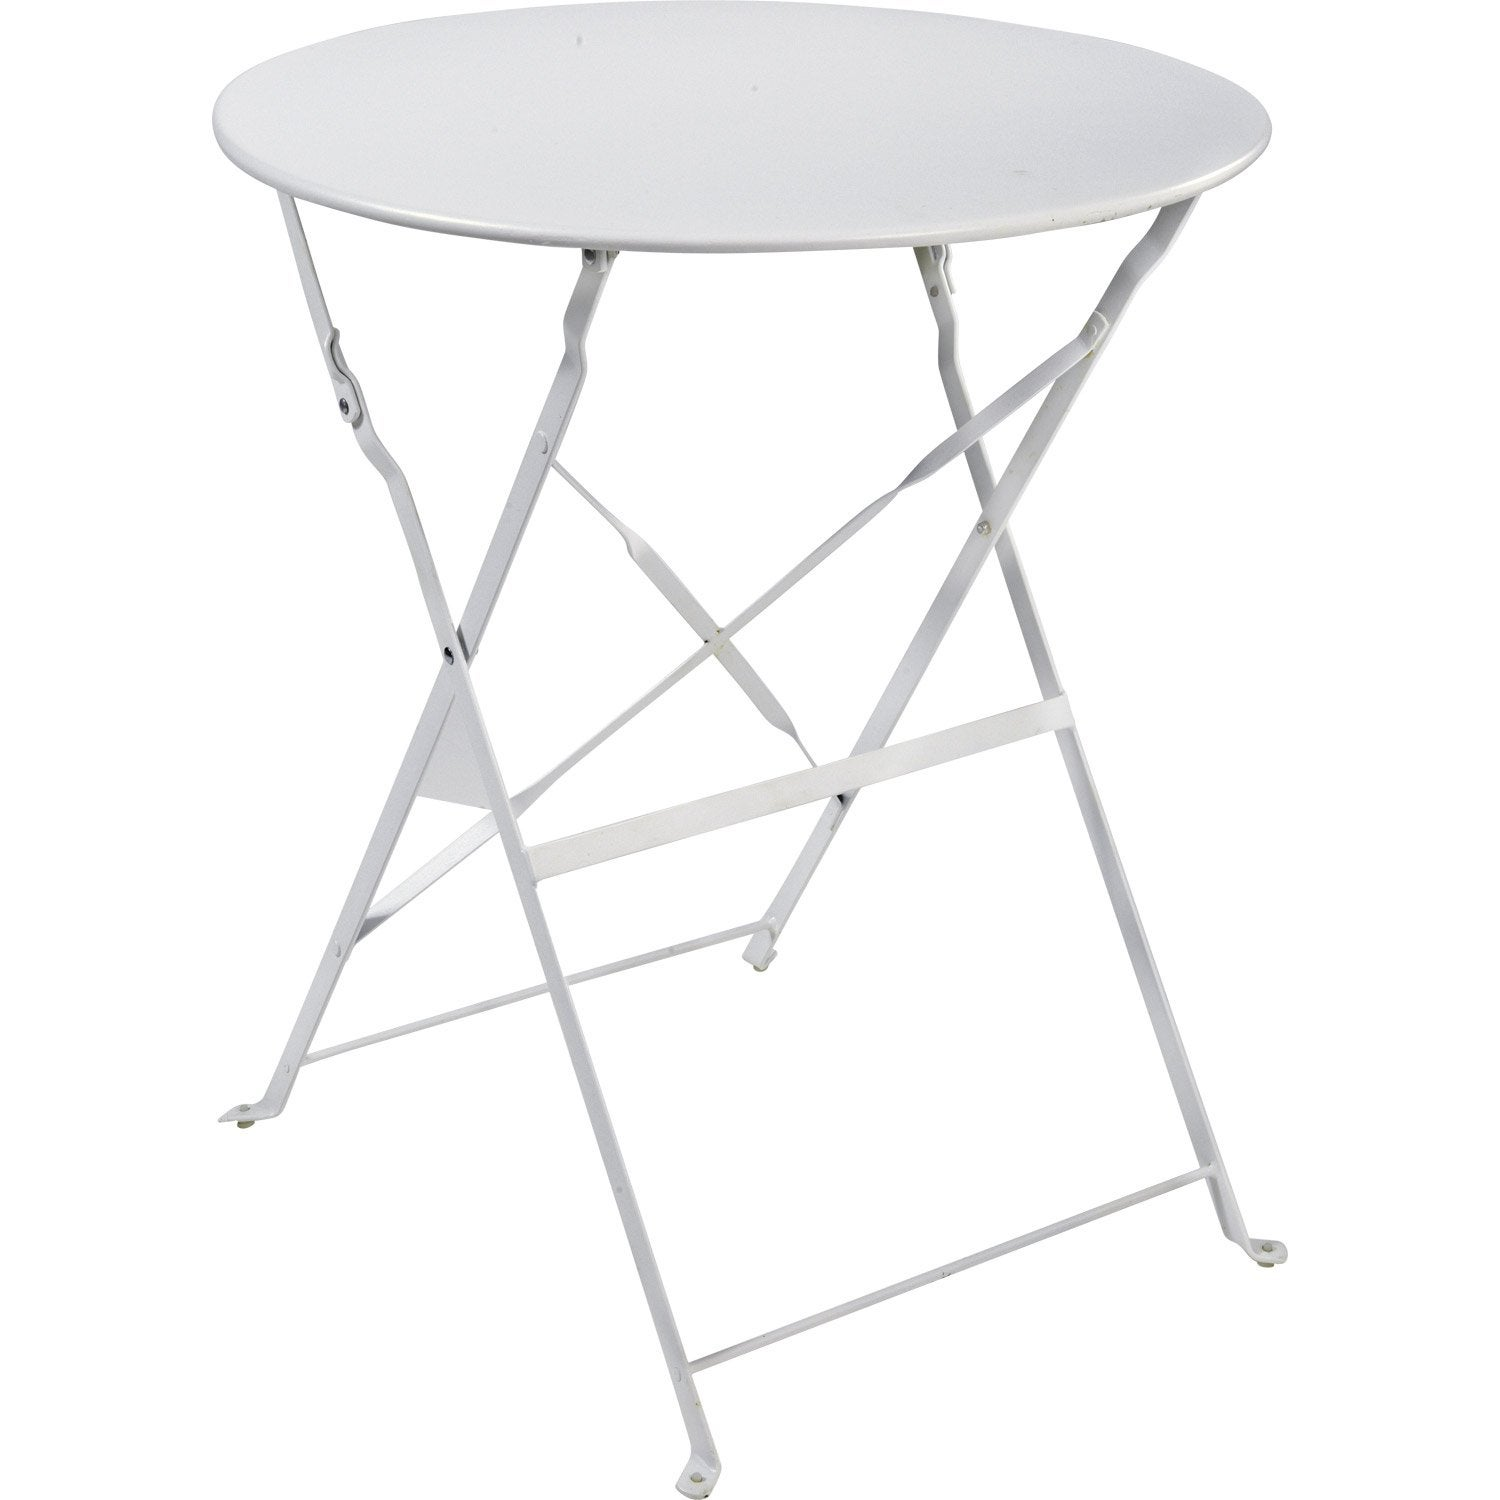 Table House Blanc Ronde Design De Best Jardin Pictures uTJ1cFl3K